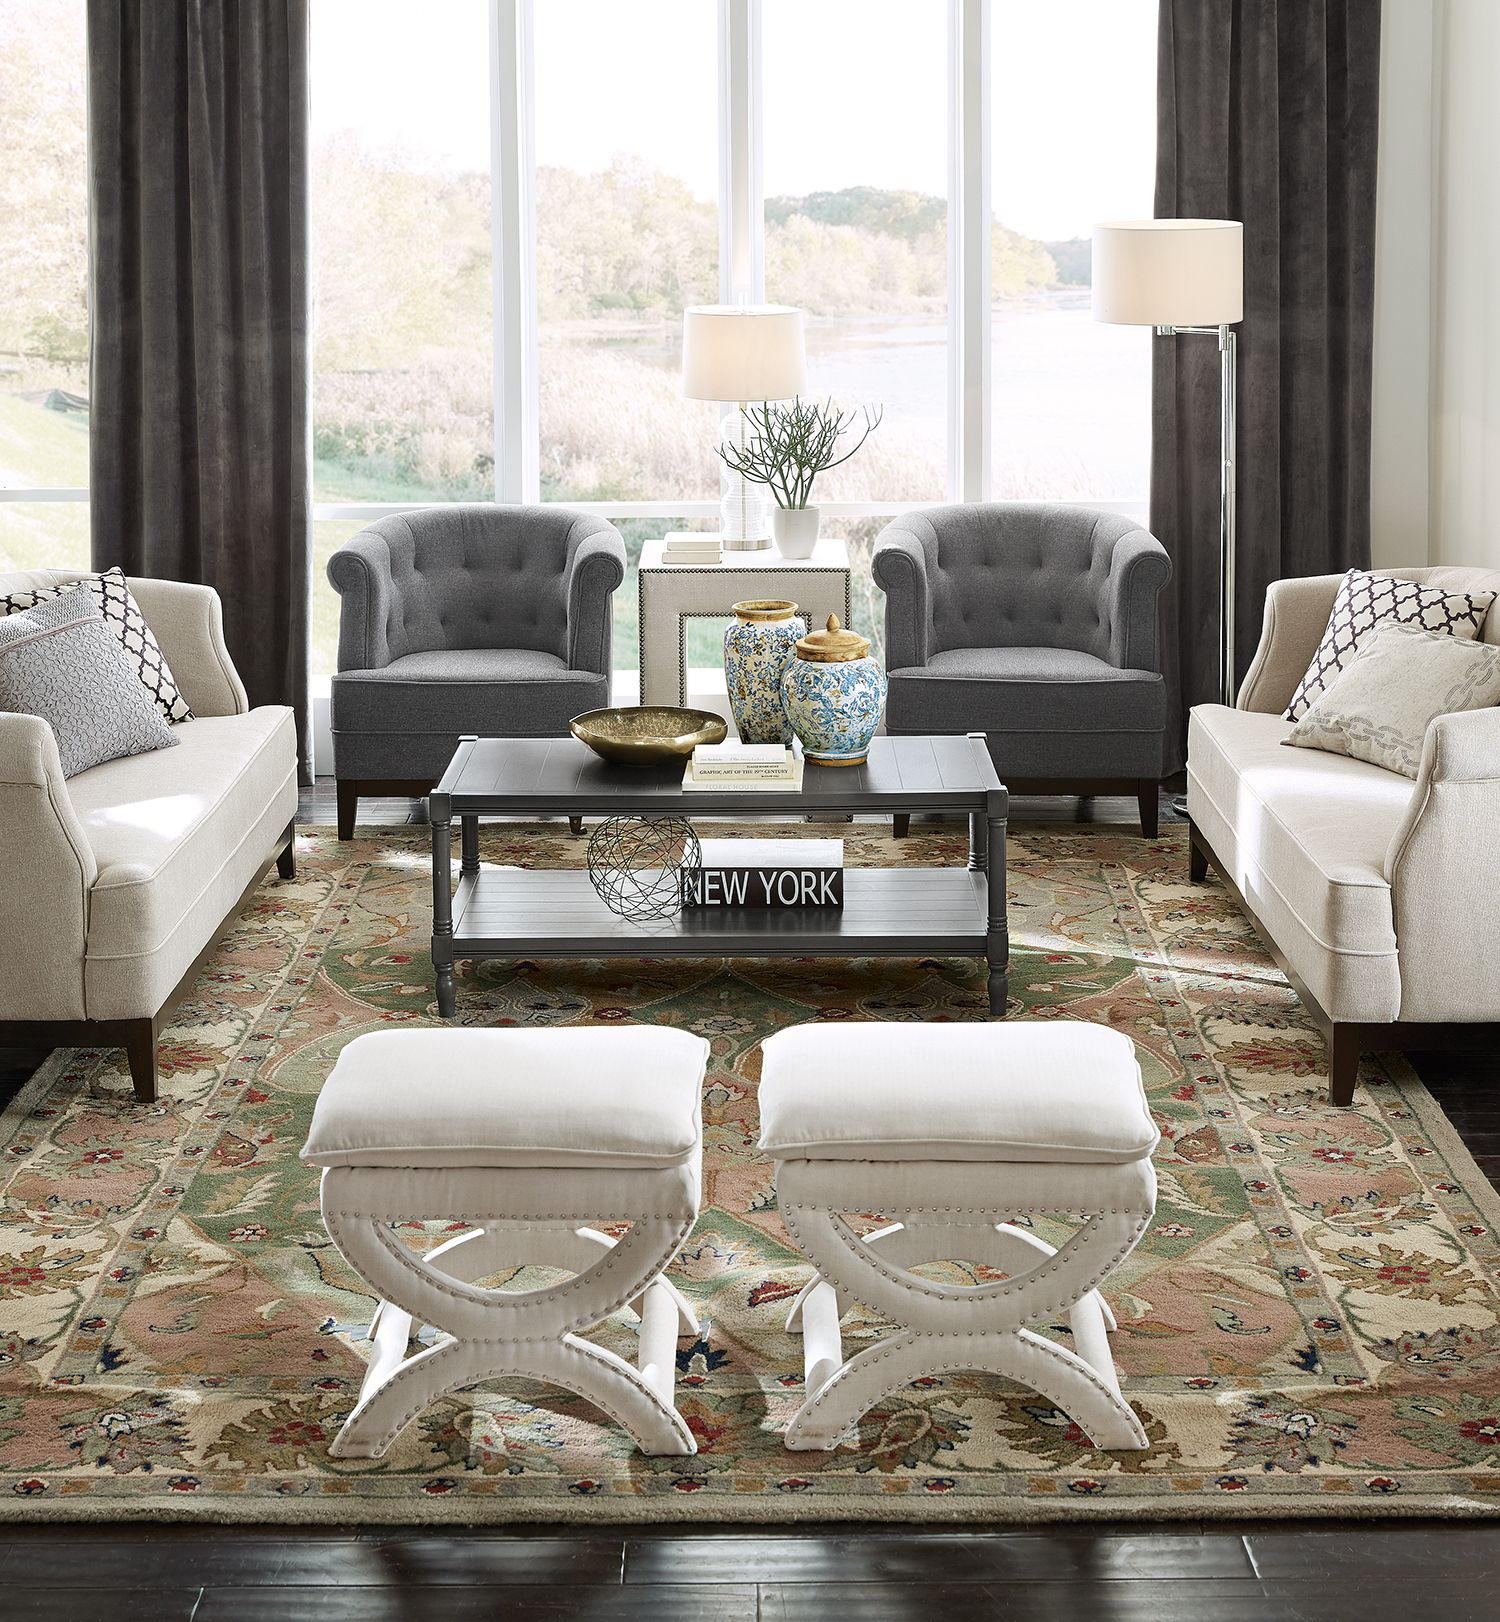 Create a sophisticated seating arrangement with neutrals and grey matched with tufts and nailhead trim. Position furniture in a way that's inviting and accommodating to family and friends when entertaining.